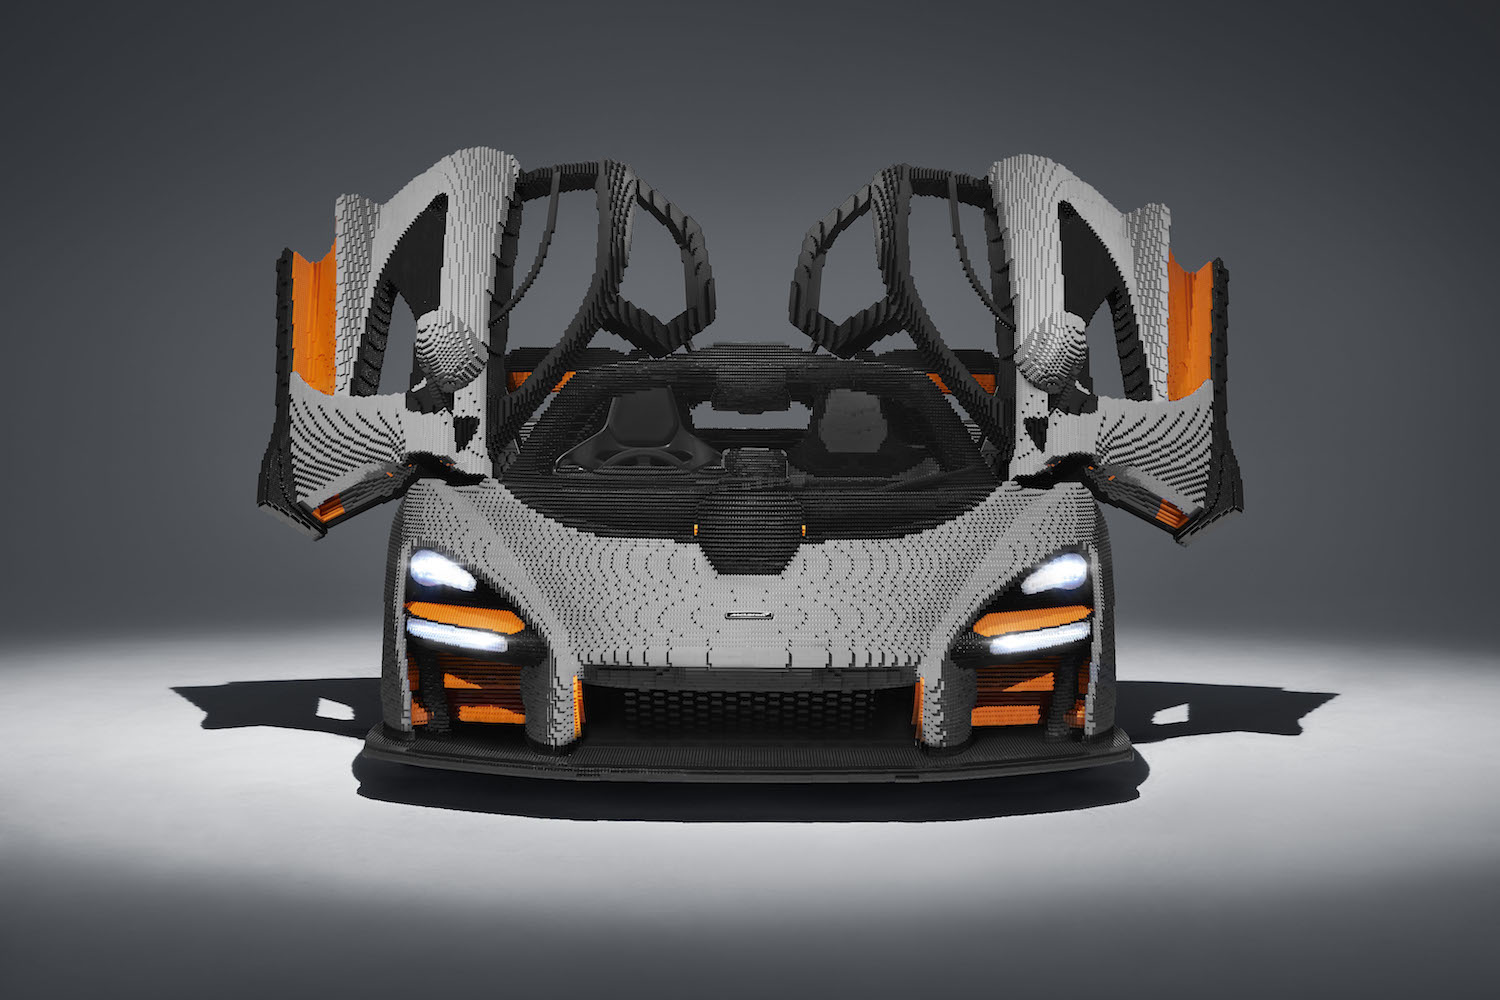 LEGO Built a Full-Size Drivable McLaren Senna Using 500,000 Bricks